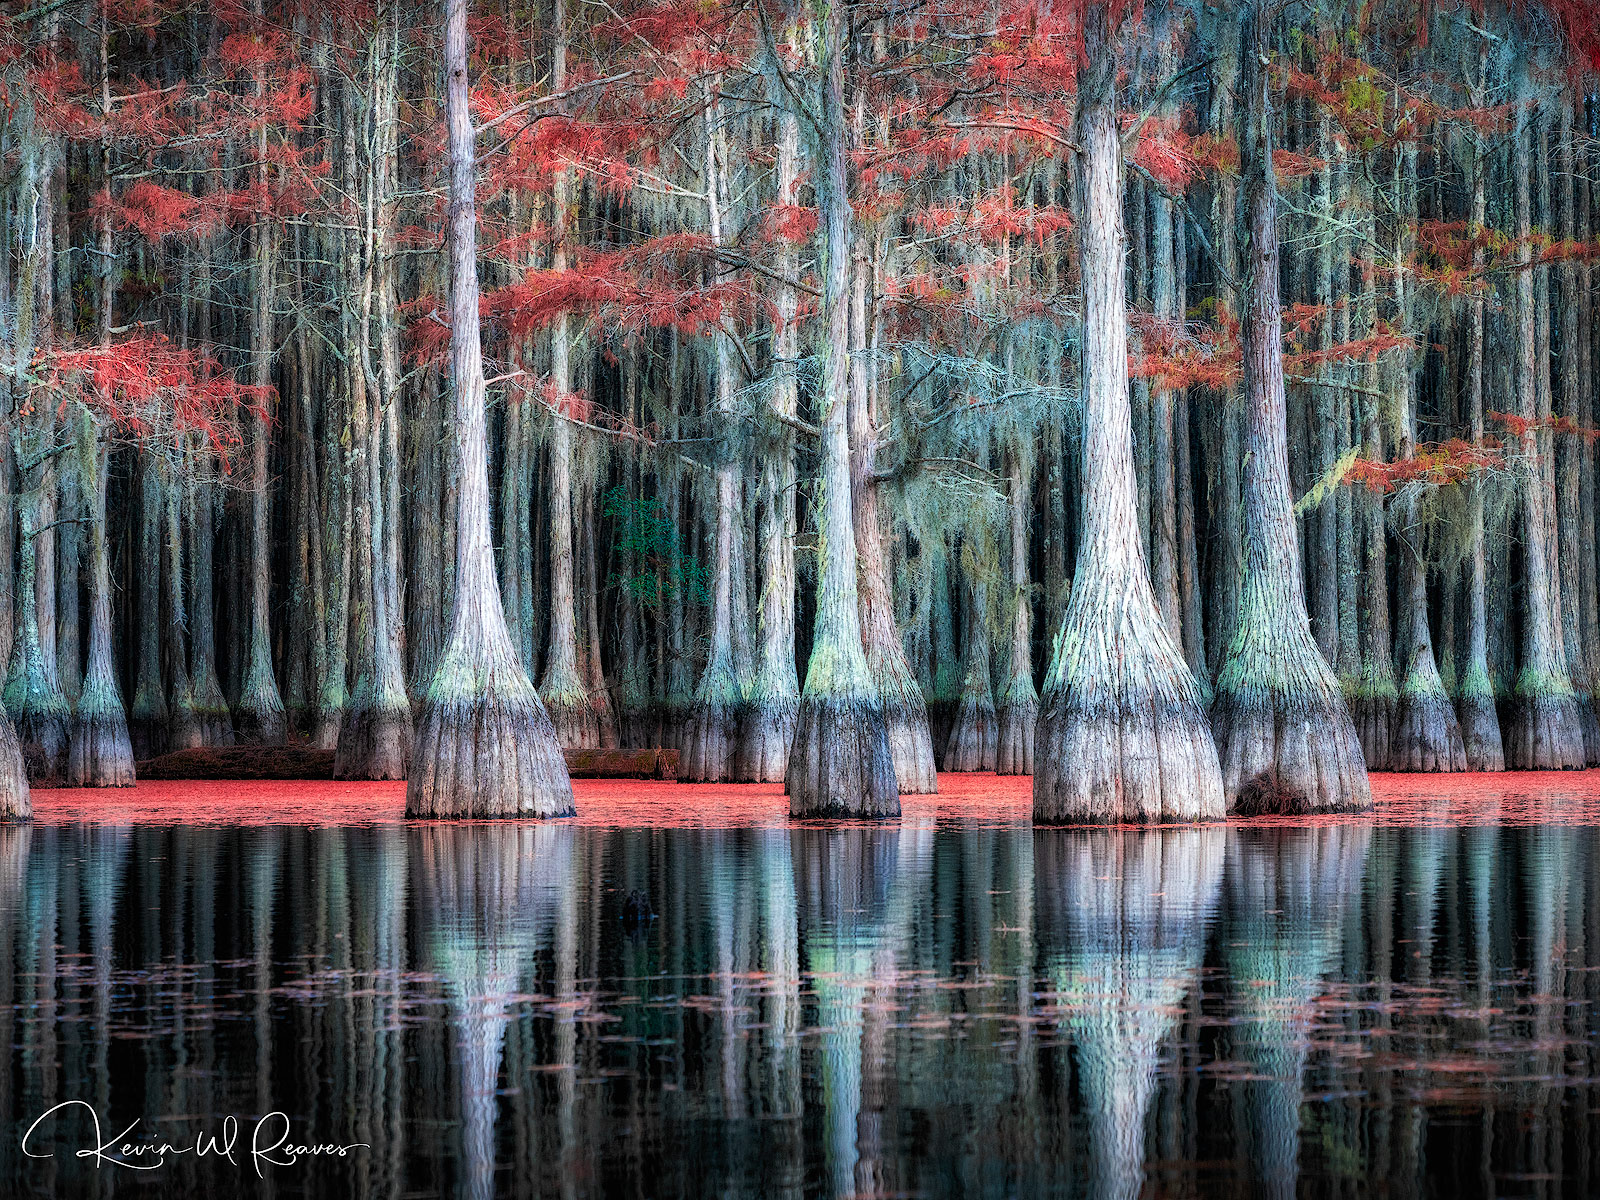 I love cypress trees.  There is a mystery to them that makes me think of how they grow in the water and multiply fairly quickly...